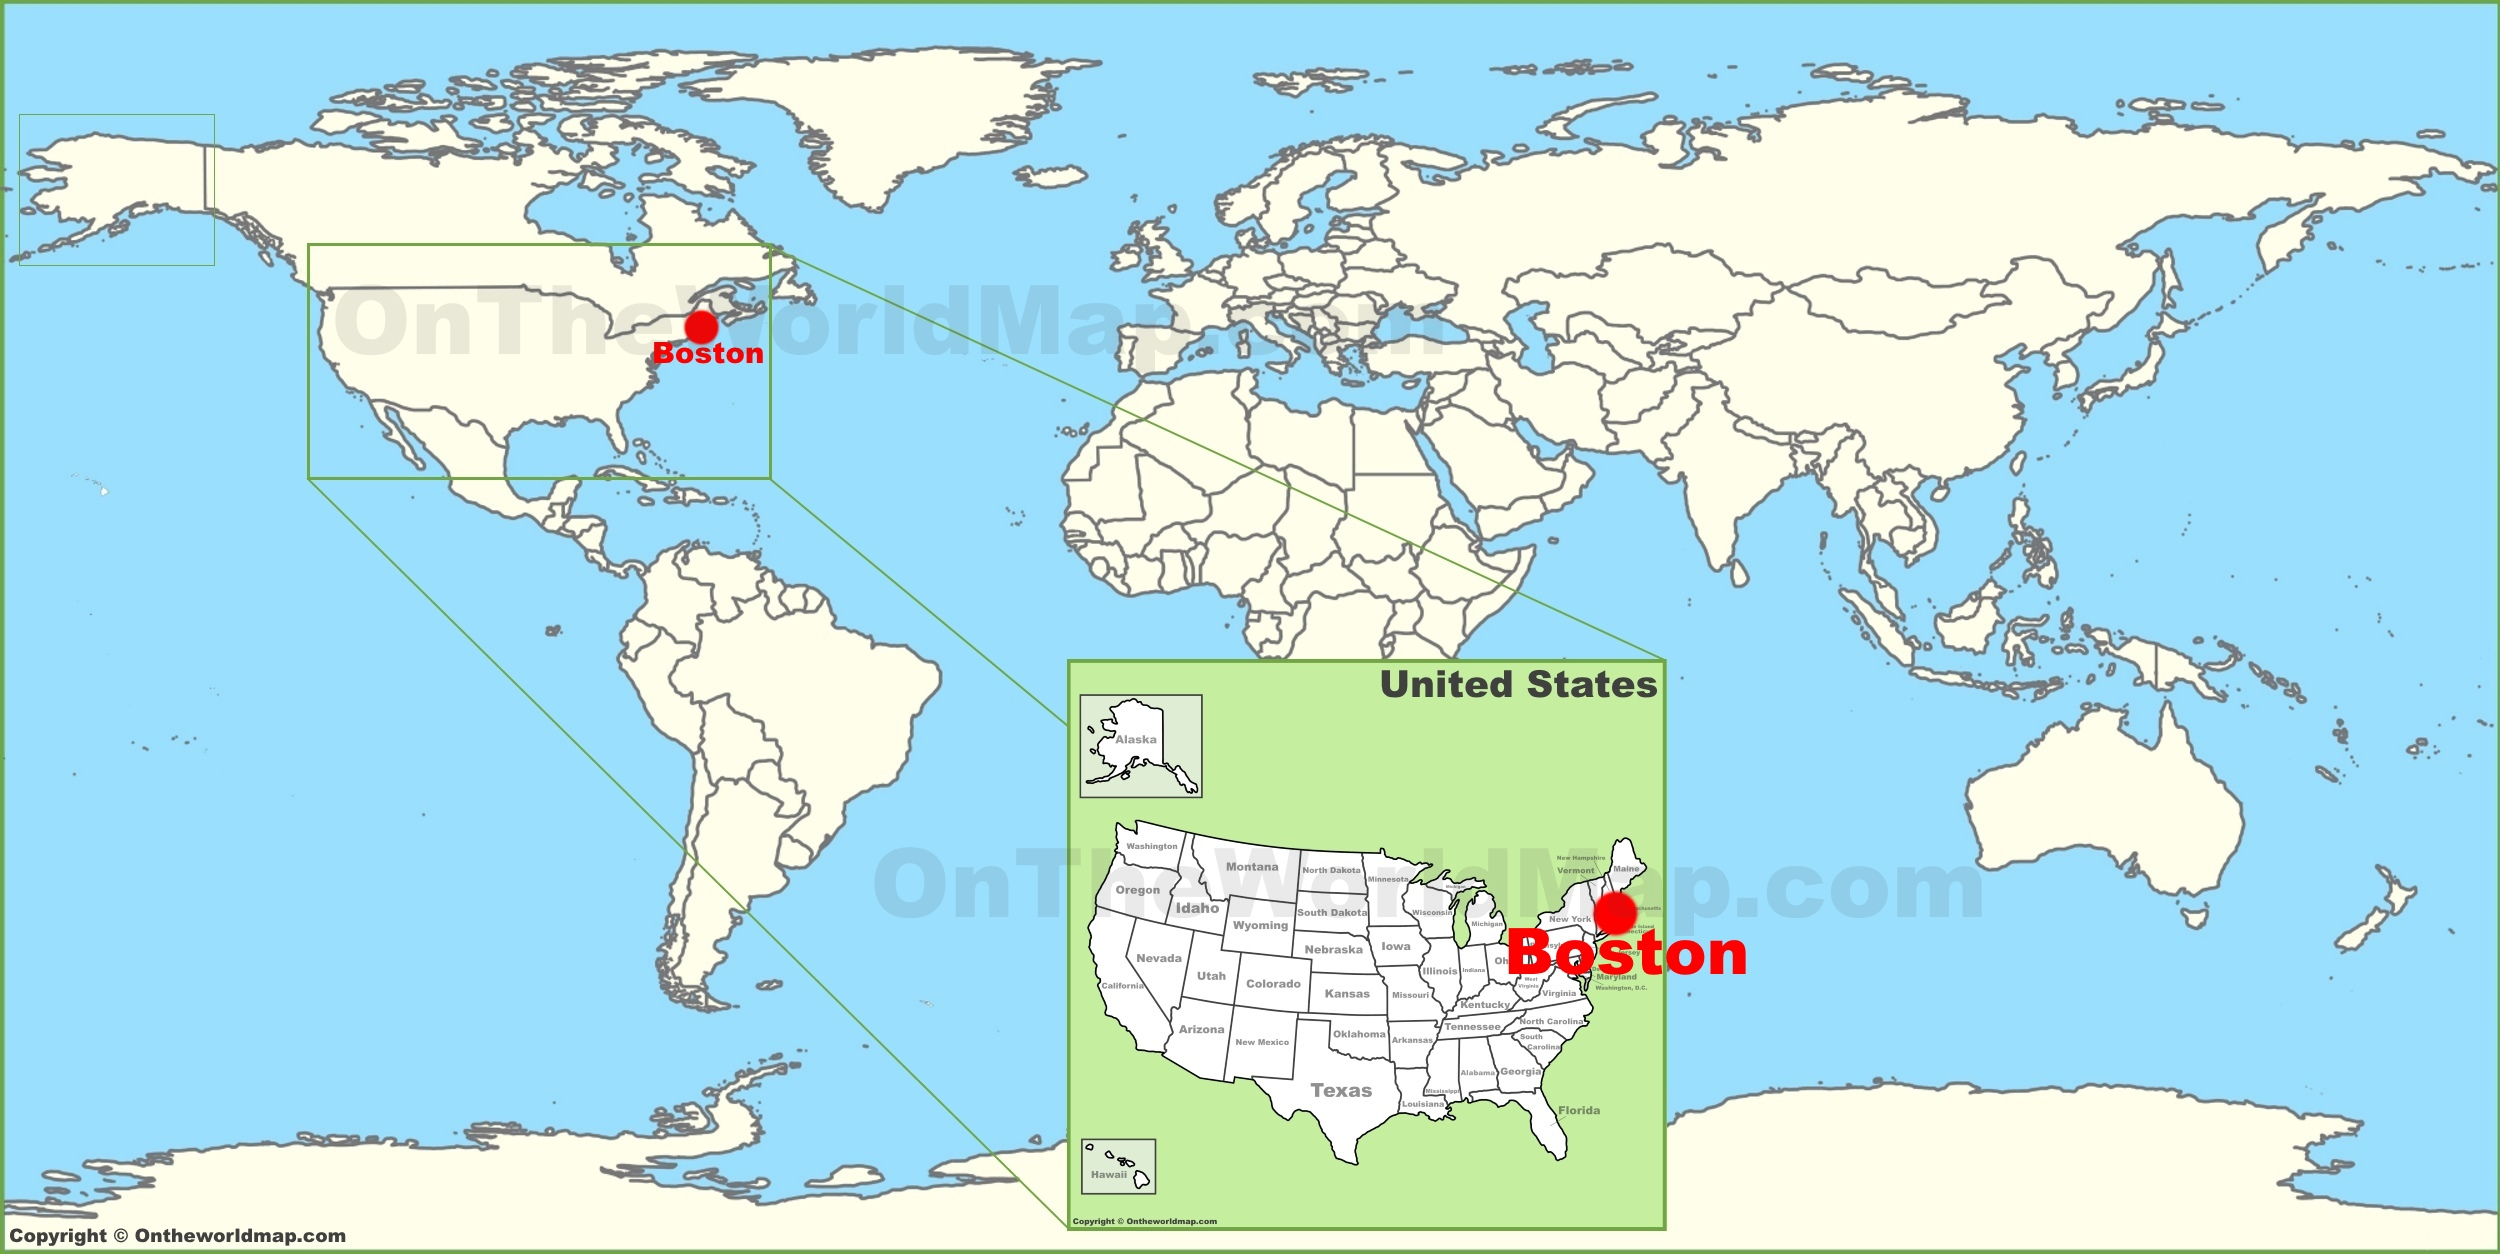 Boston On A Map Boston on the World Map